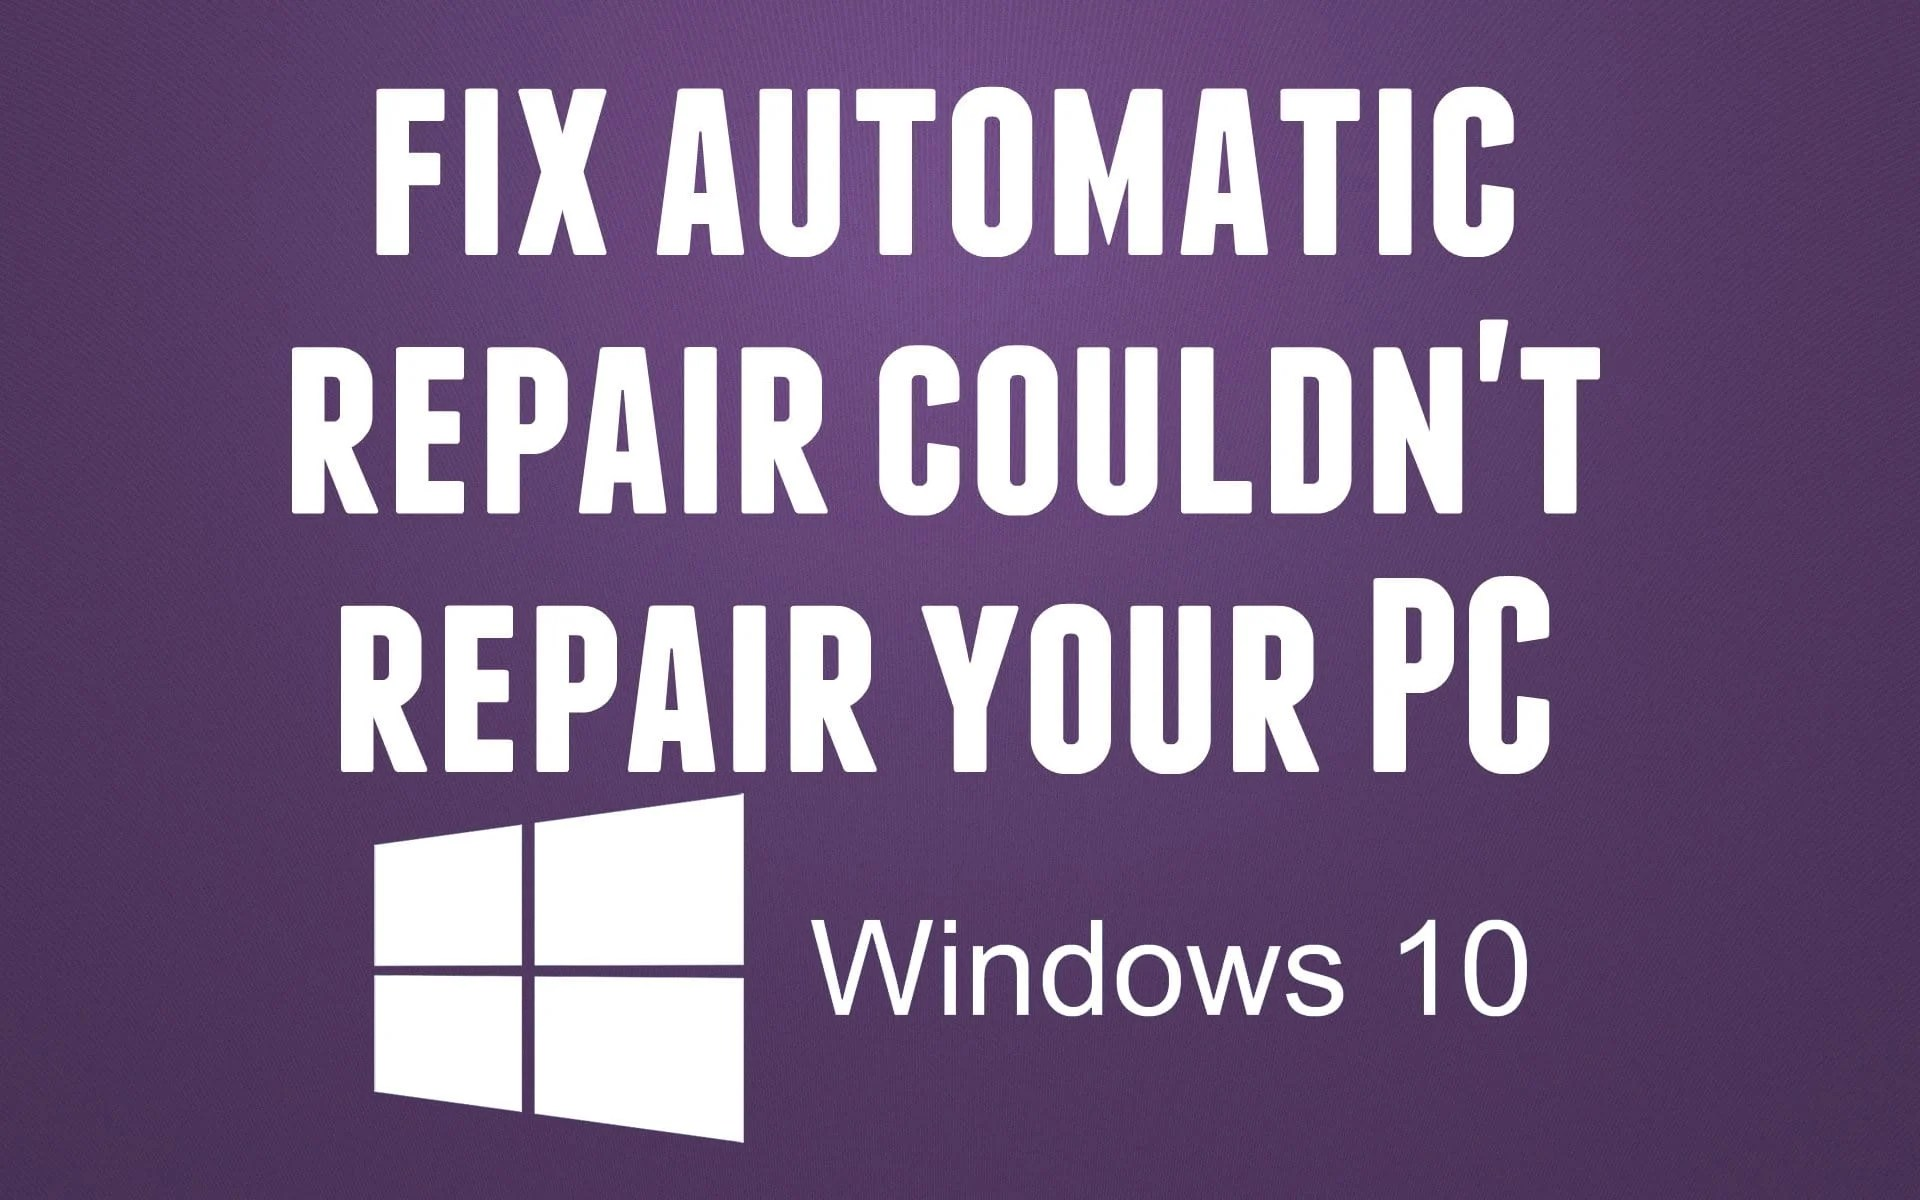 Repair Automatic How To Fix Automatic Repair Couldn 39t Repair Your Pc